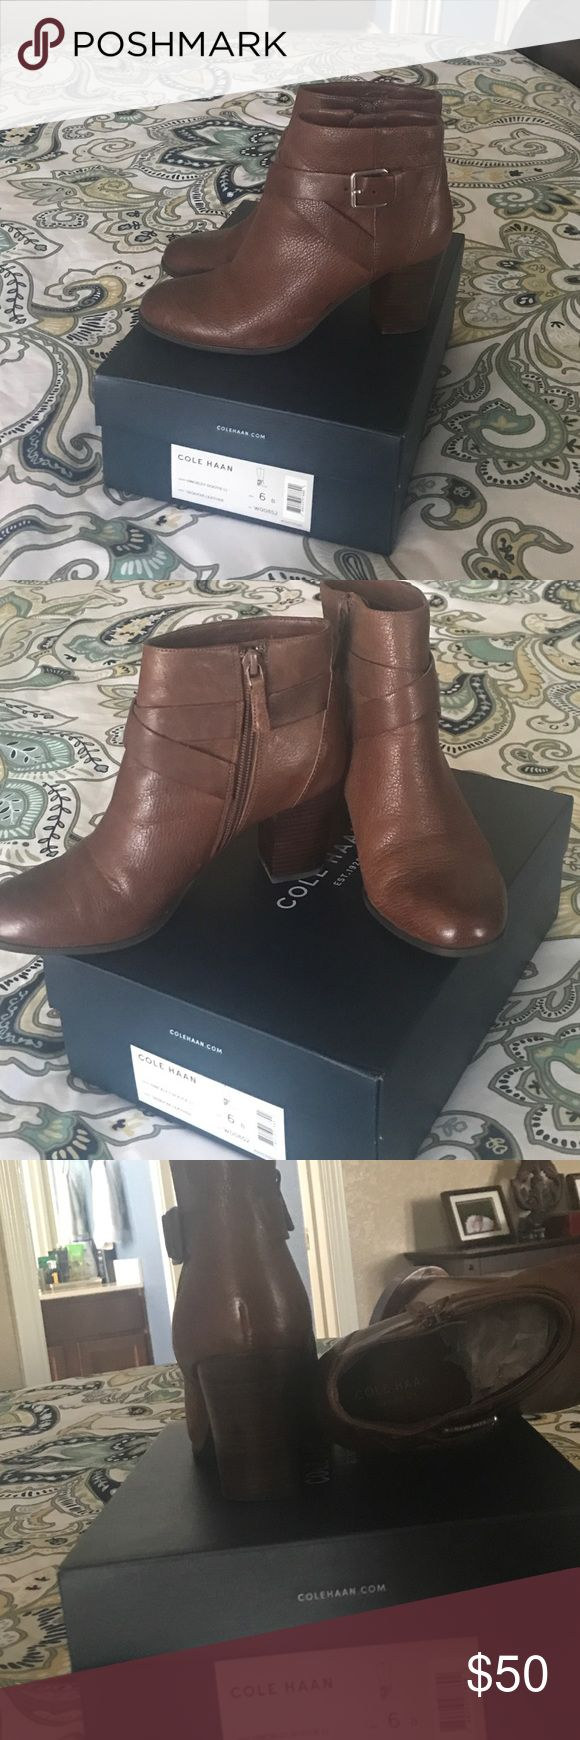 Cole Haan ankle boots. In brown leather. Cole Haan ankle boots. In brown leather. Worn twice. Great condition. Cole Haan Shoes Ankle Boots & Booties